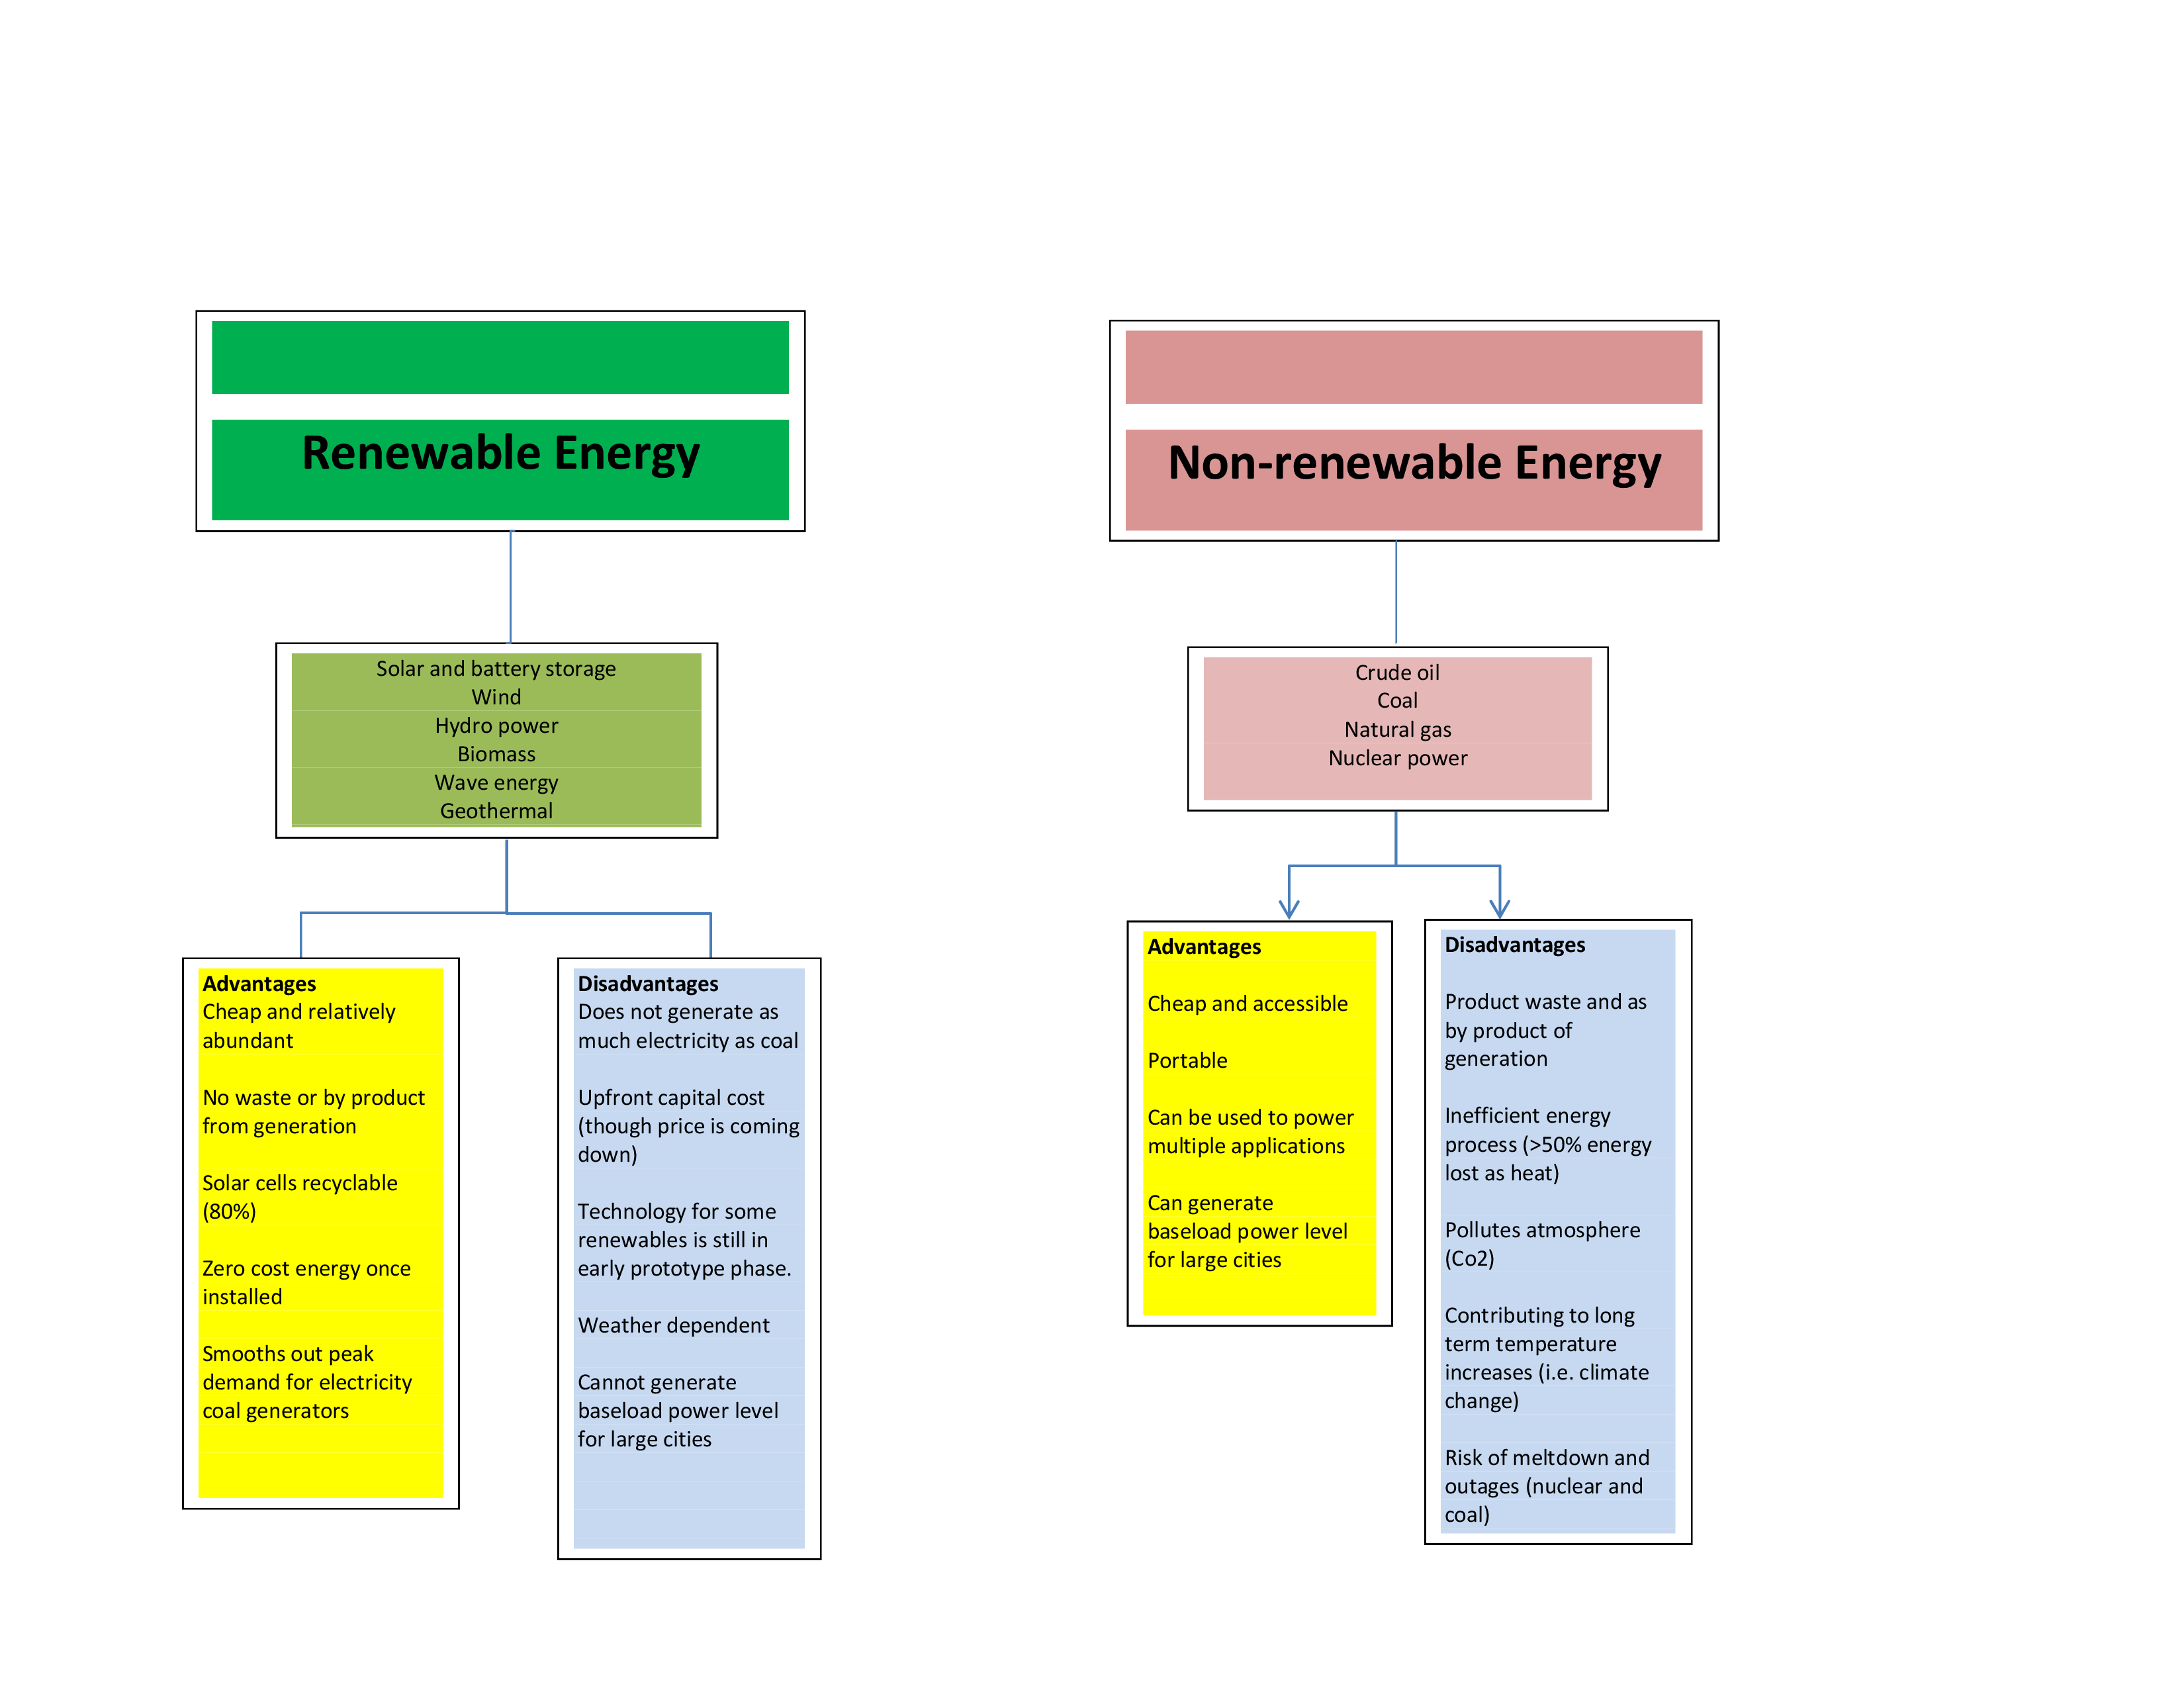 Renewable And Nonrenewable Energy Advantages And